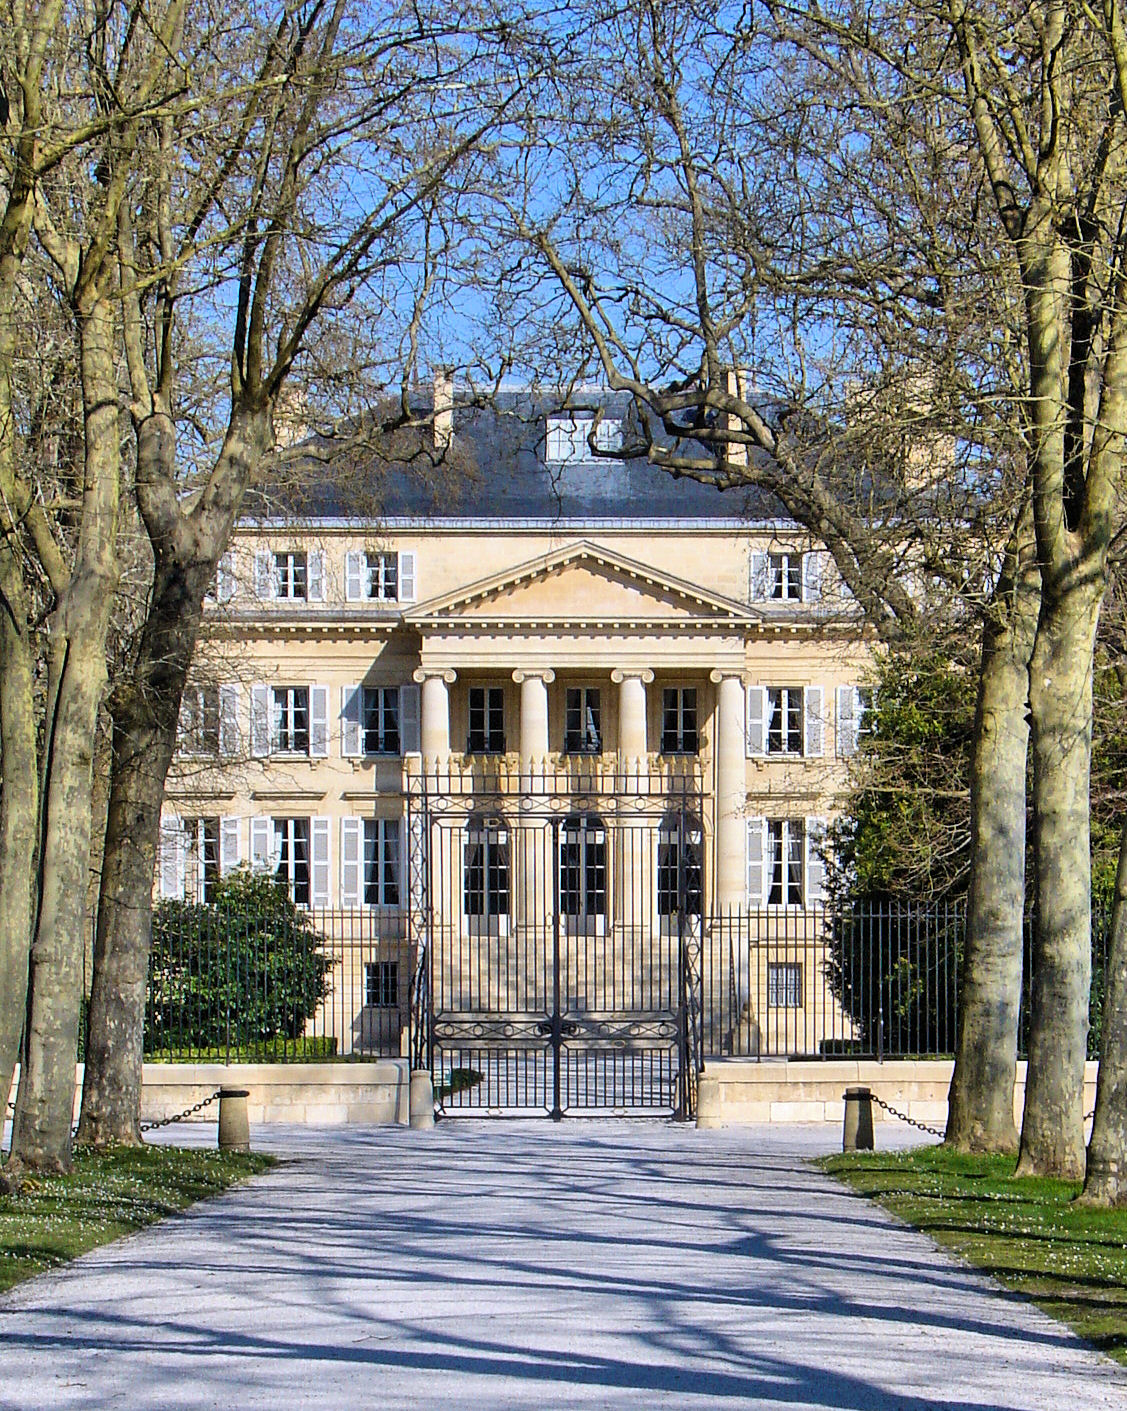 Bienvenue a Chateau Margaux—a Premier Grand Cru Classé or First Great Classified Growth.